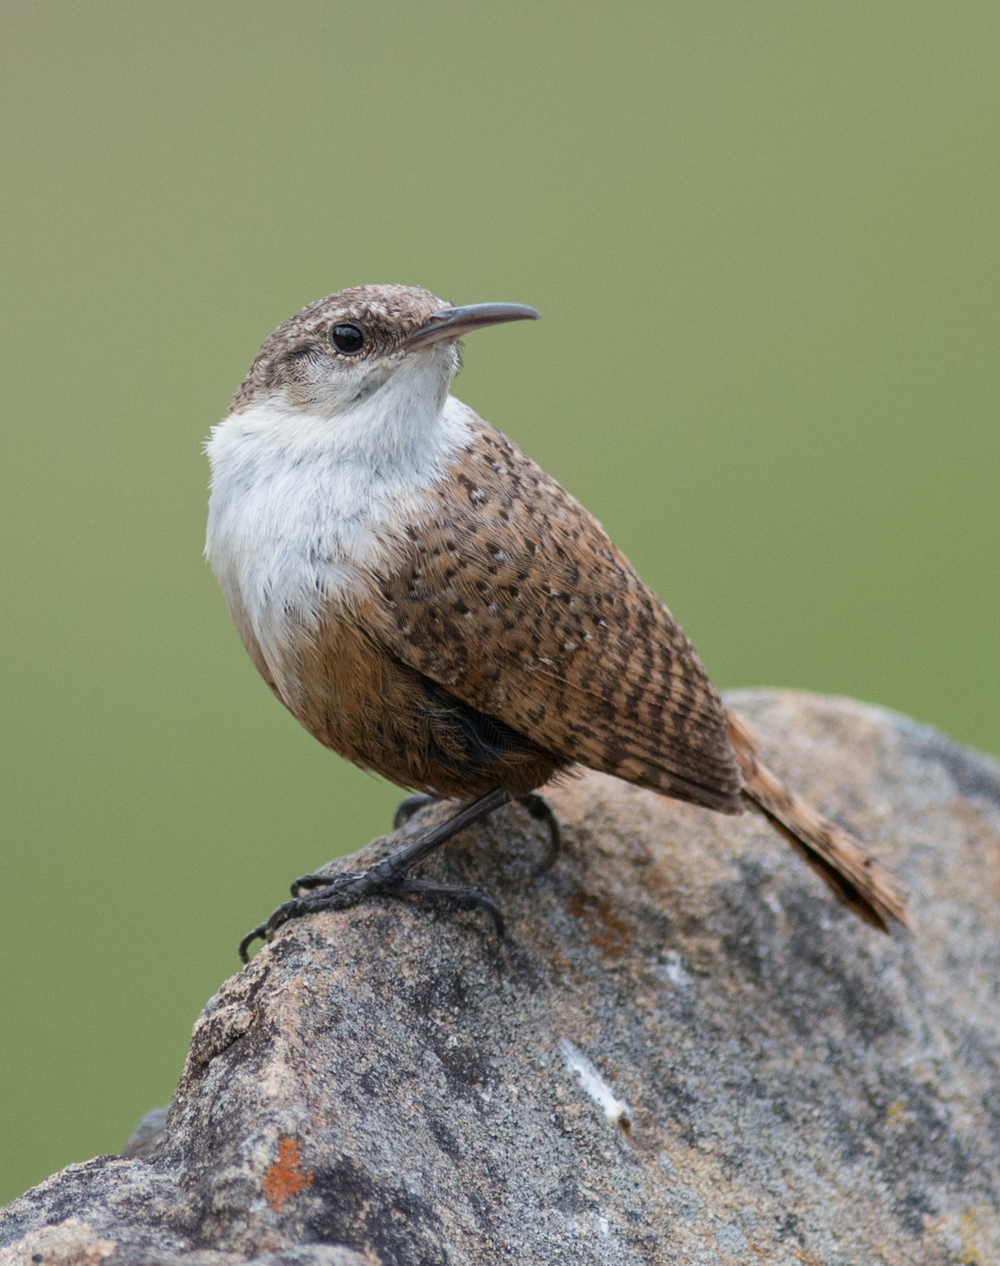 Featured Photo 22: Canyon Wren (Catherpes mexicanus) EQ: D800 f/2.8 300mm    Taken: 4-25-15 10:38 at Coyote Lake, Santa Clara (CA) Setting: 300mm, f/3.5, 1/1600s, ISO450     Condition: Sunny